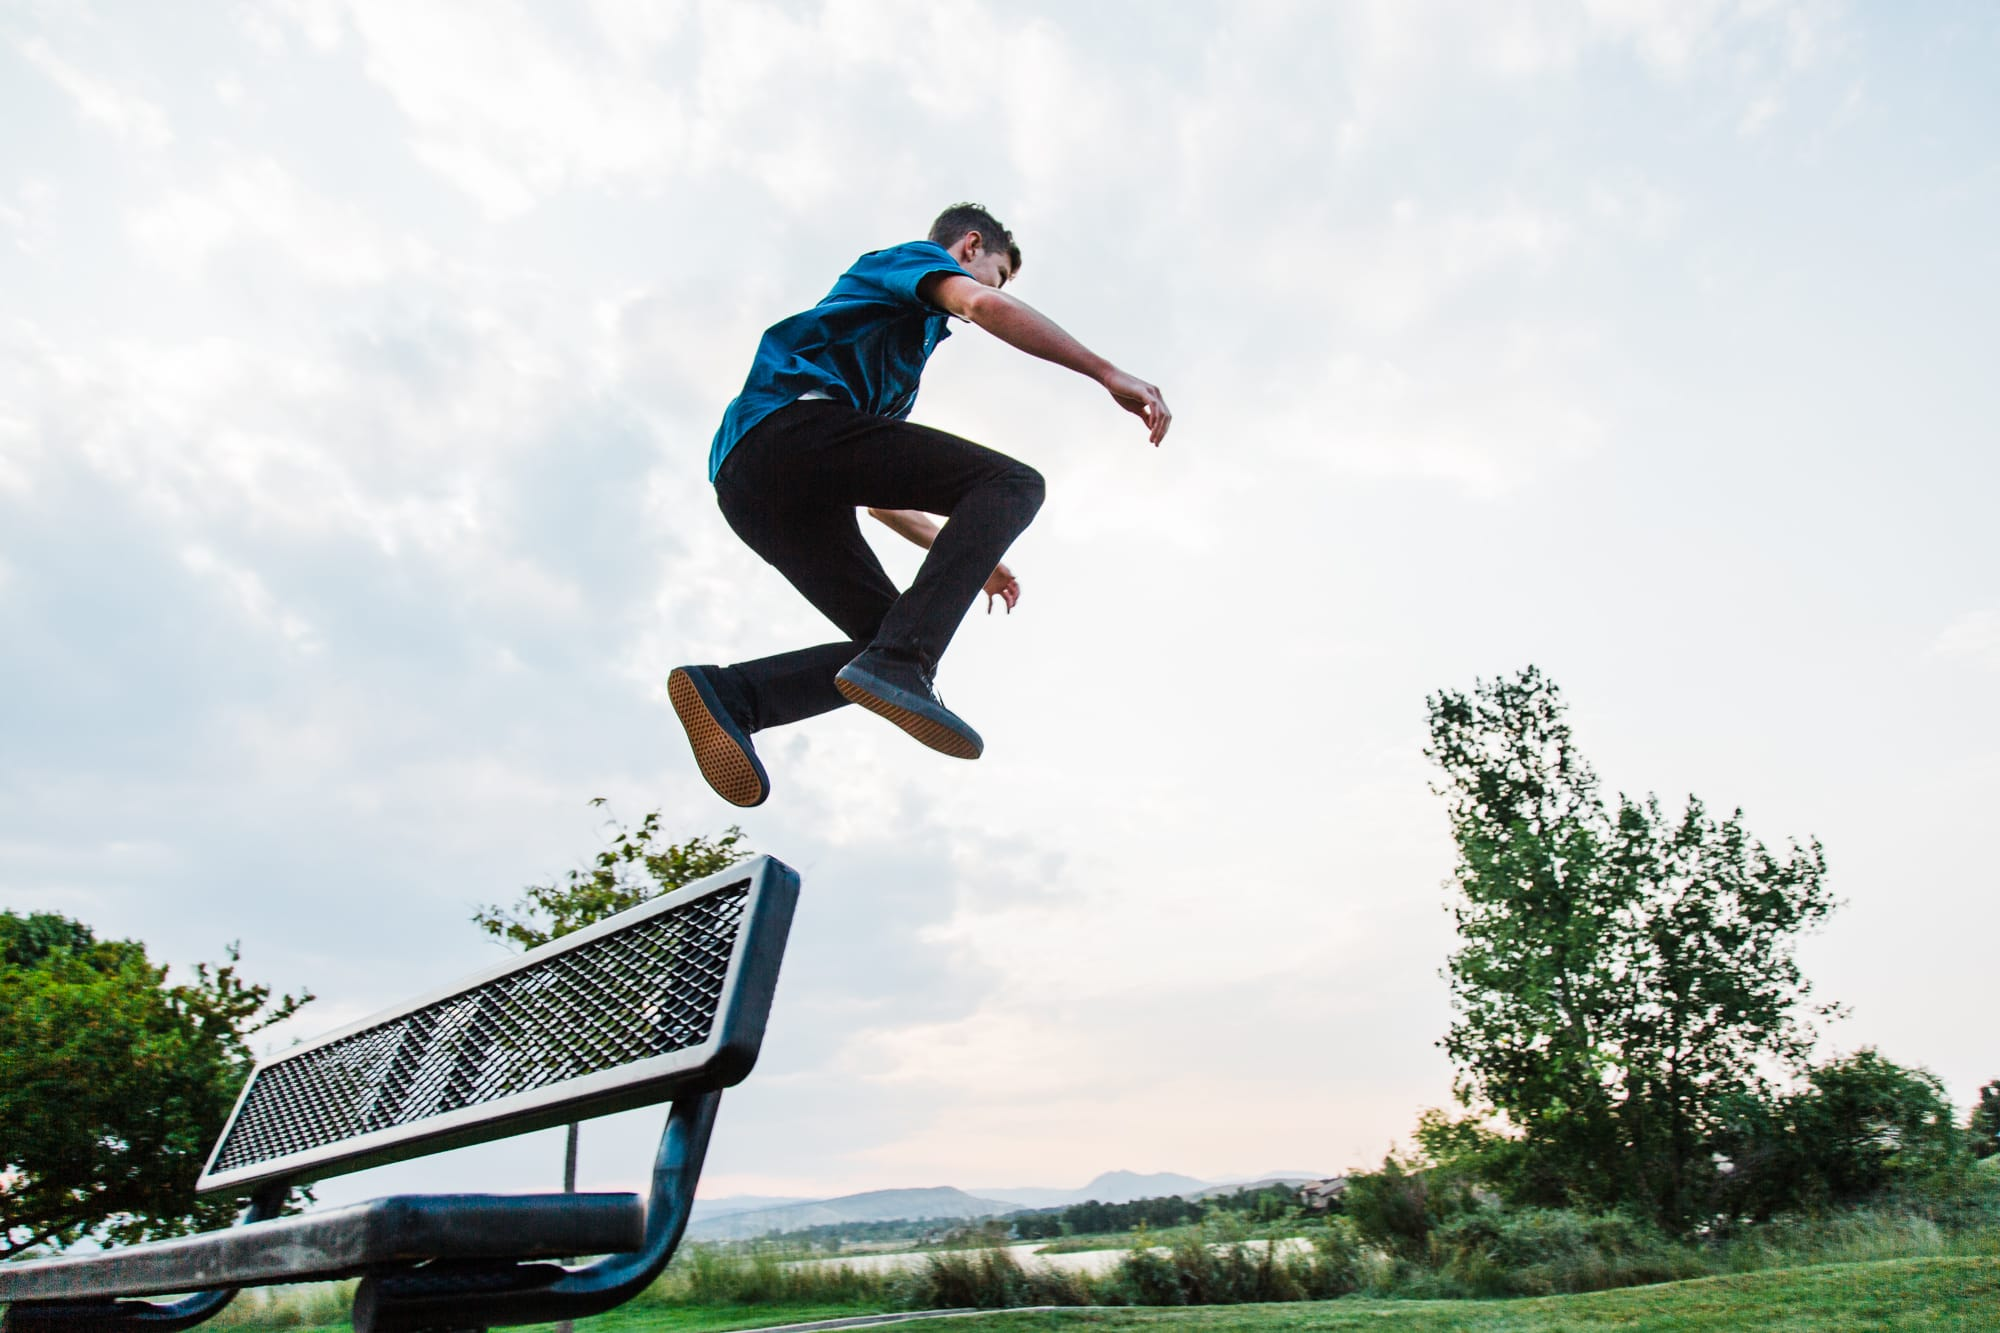 Wide shot of a high school senior guy jumping off the back of a bench.